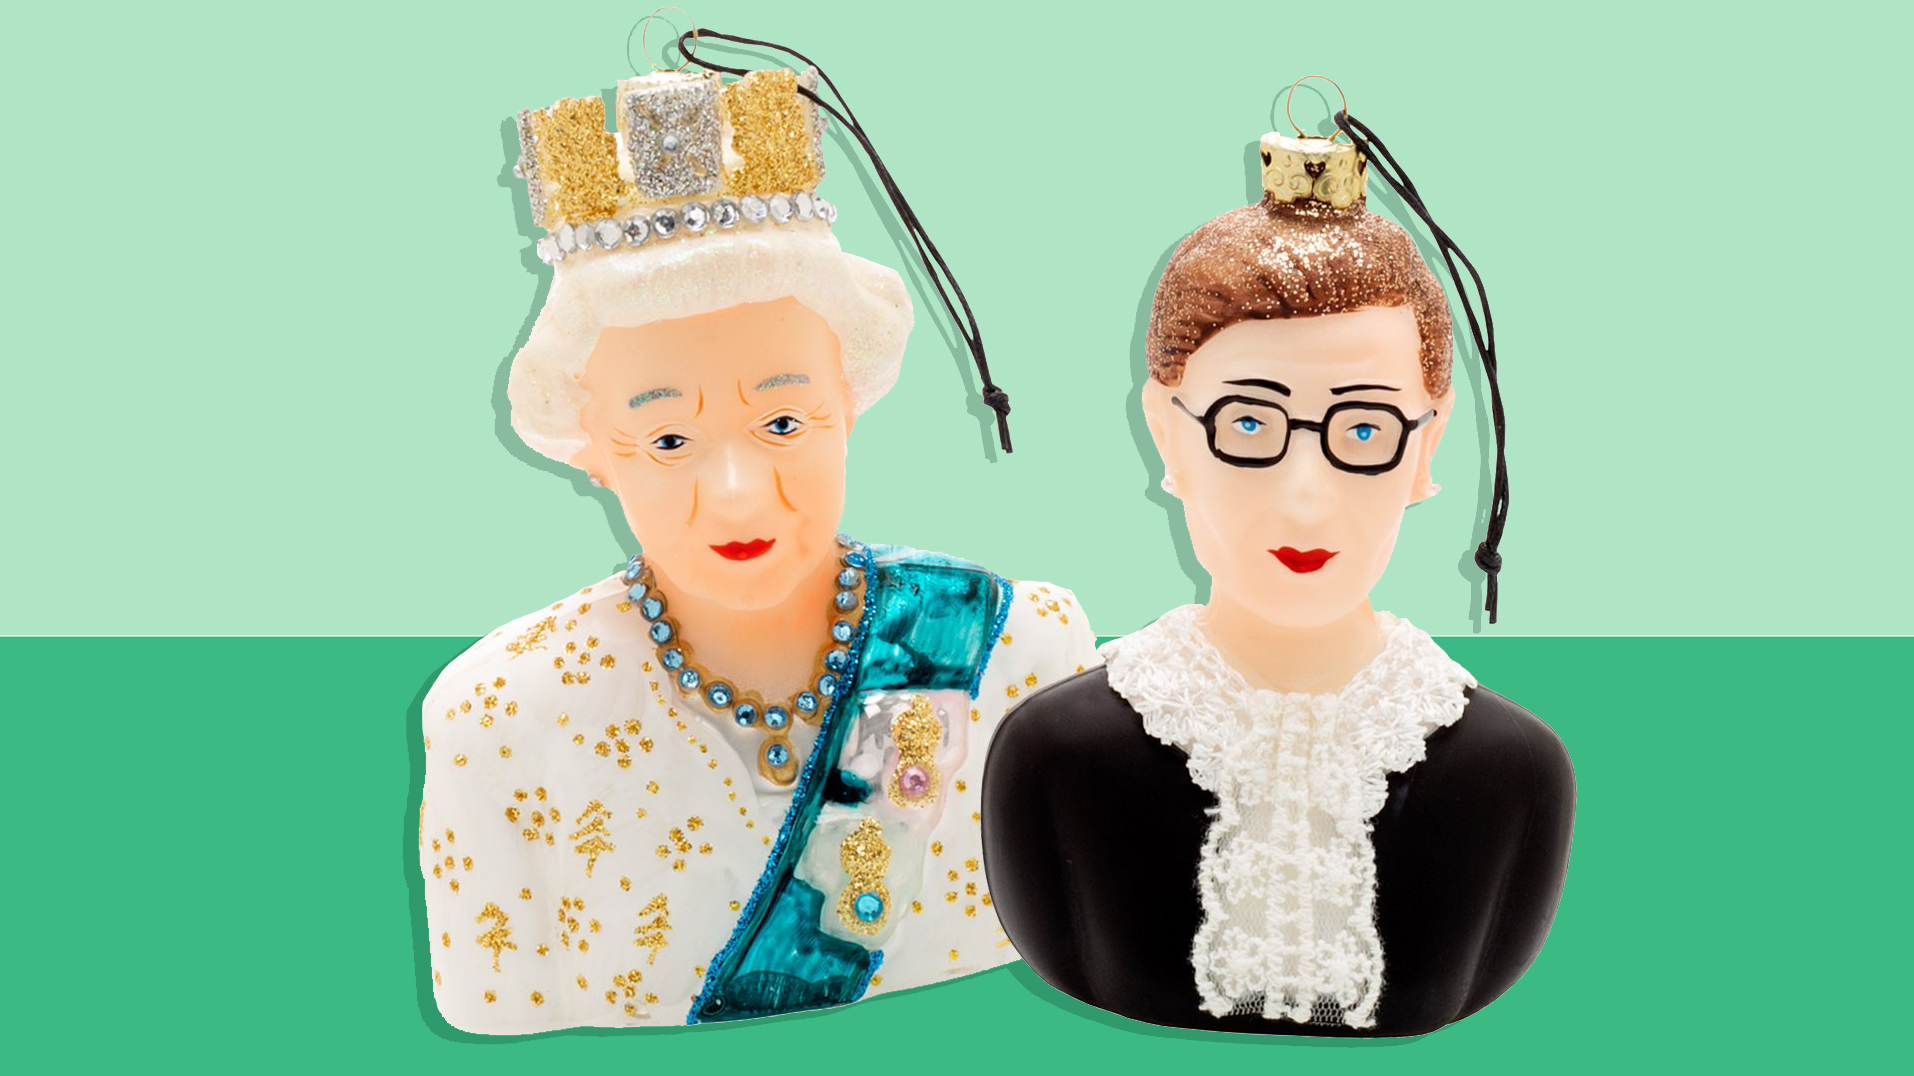 Best Christmas gifts 2020 - RBG Queen ornaments